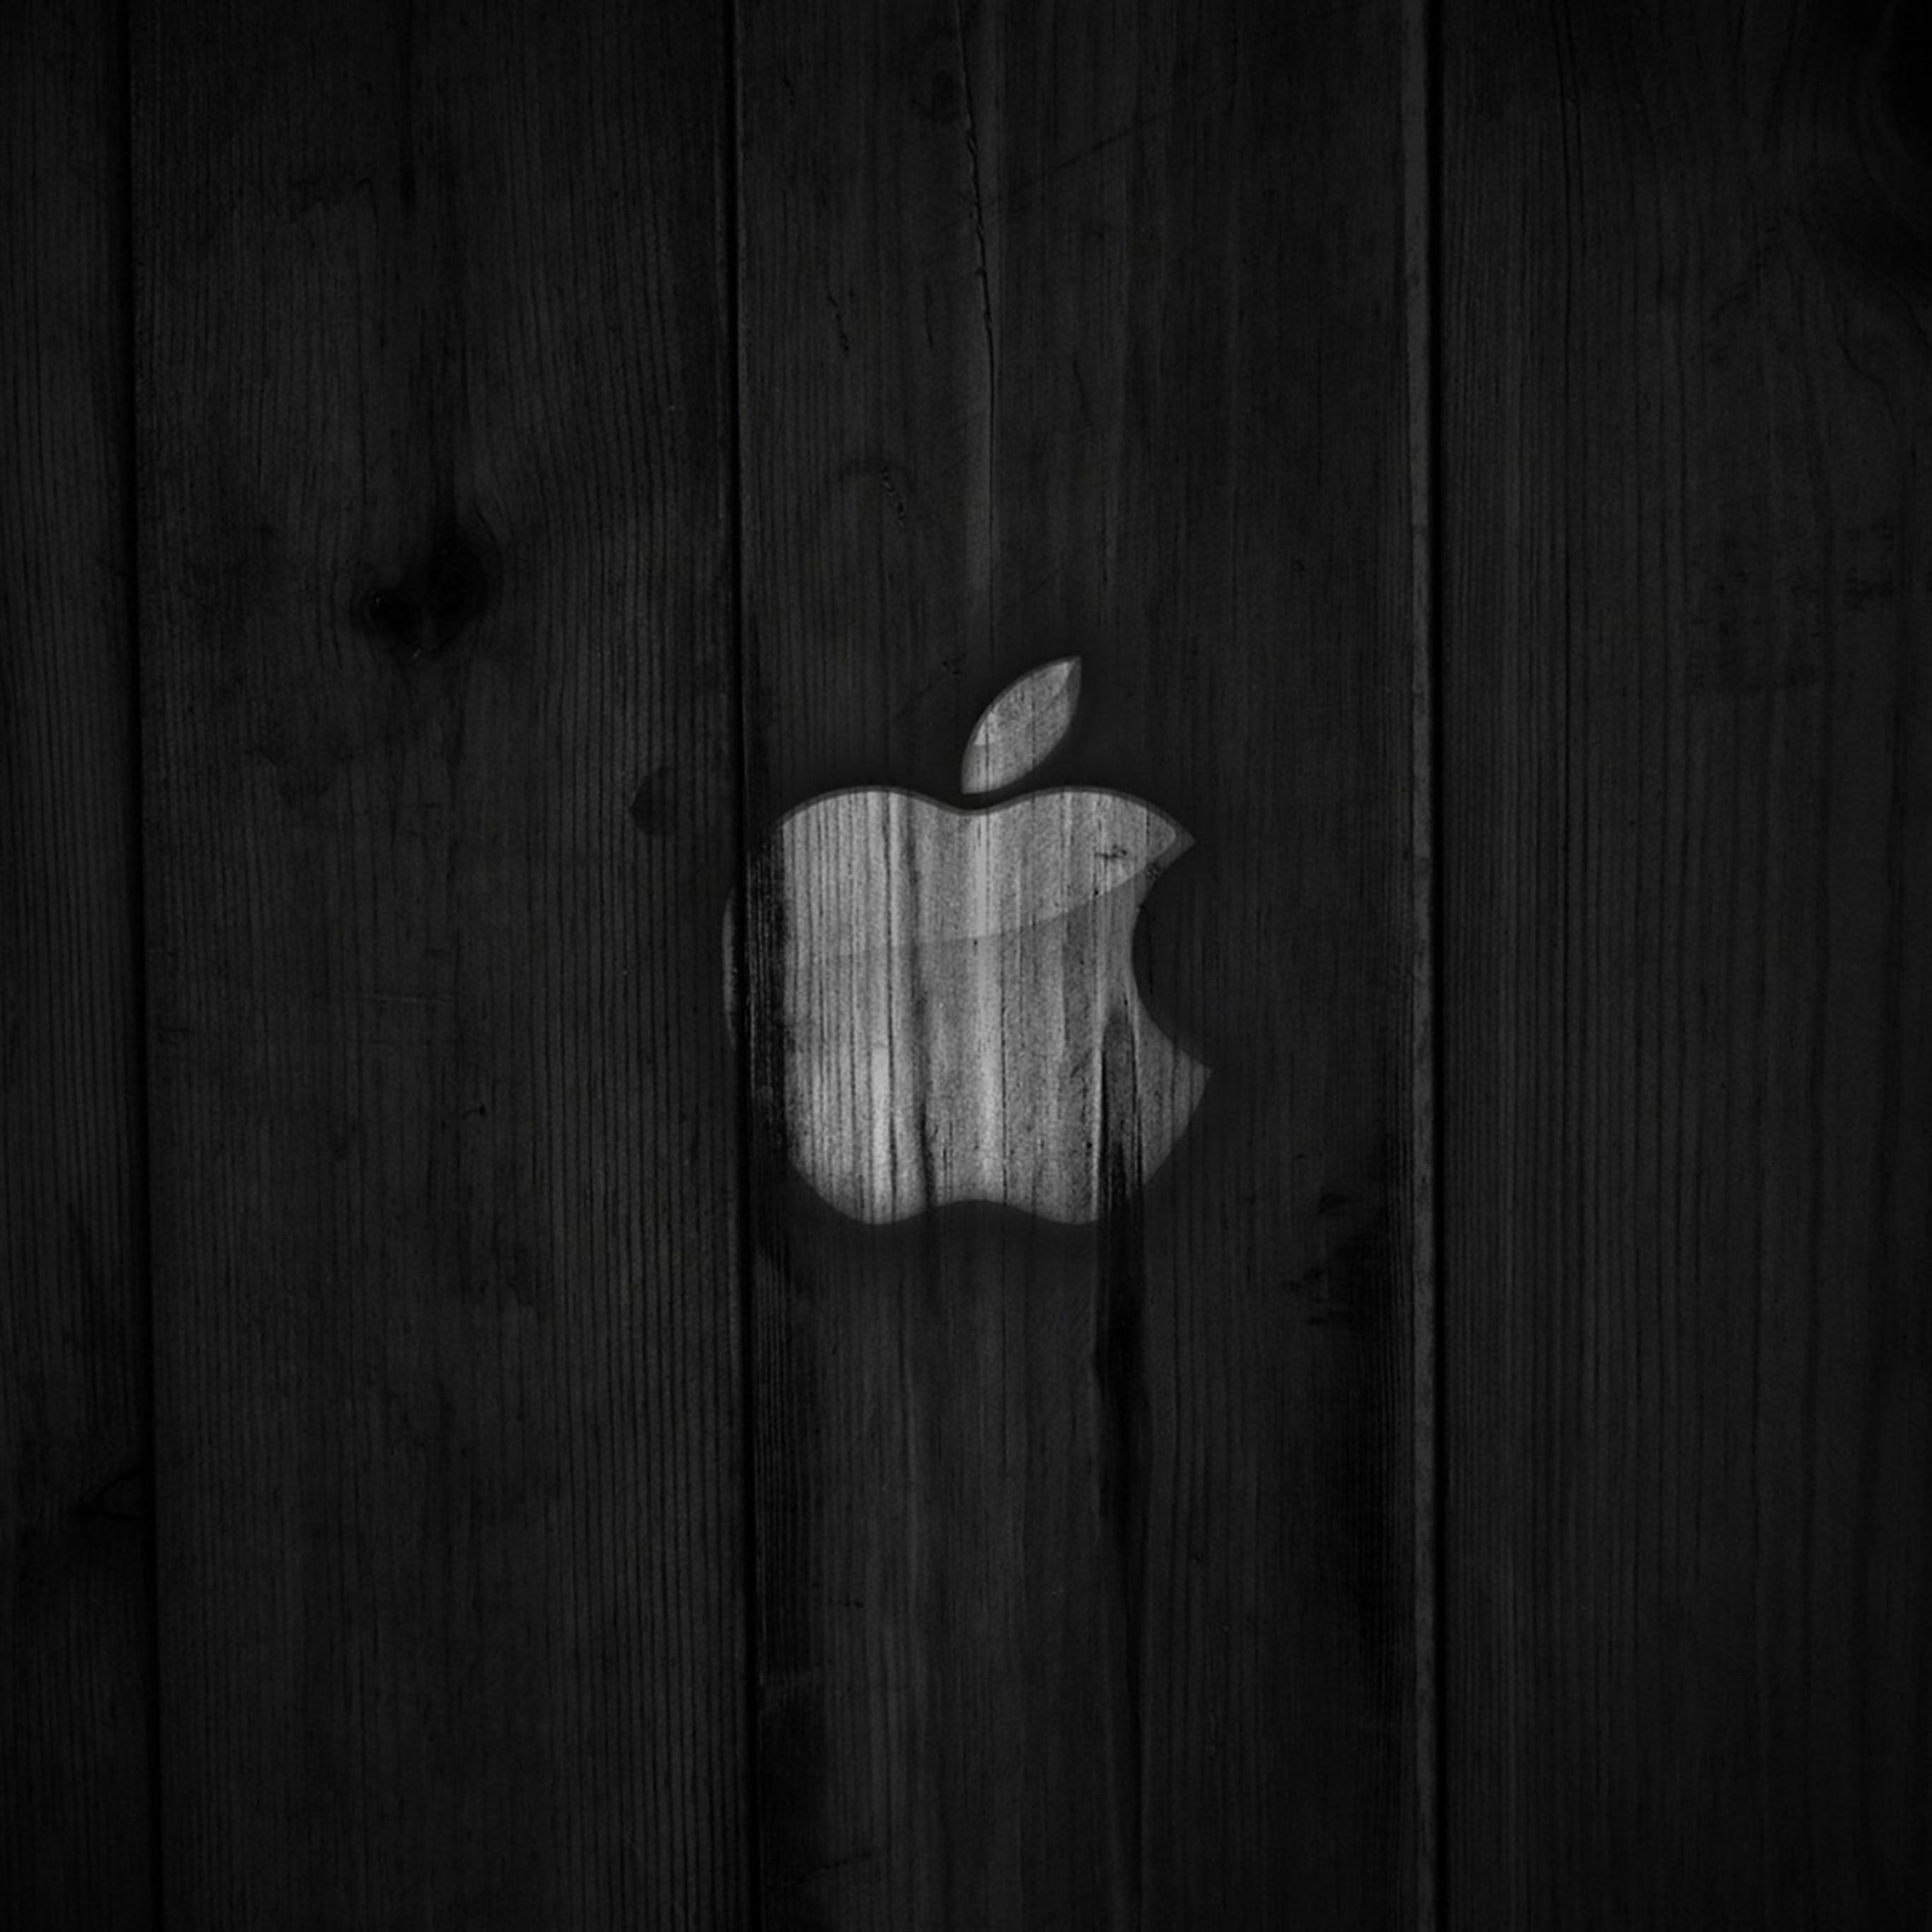 Apple iPad Pro Wallpaper 105